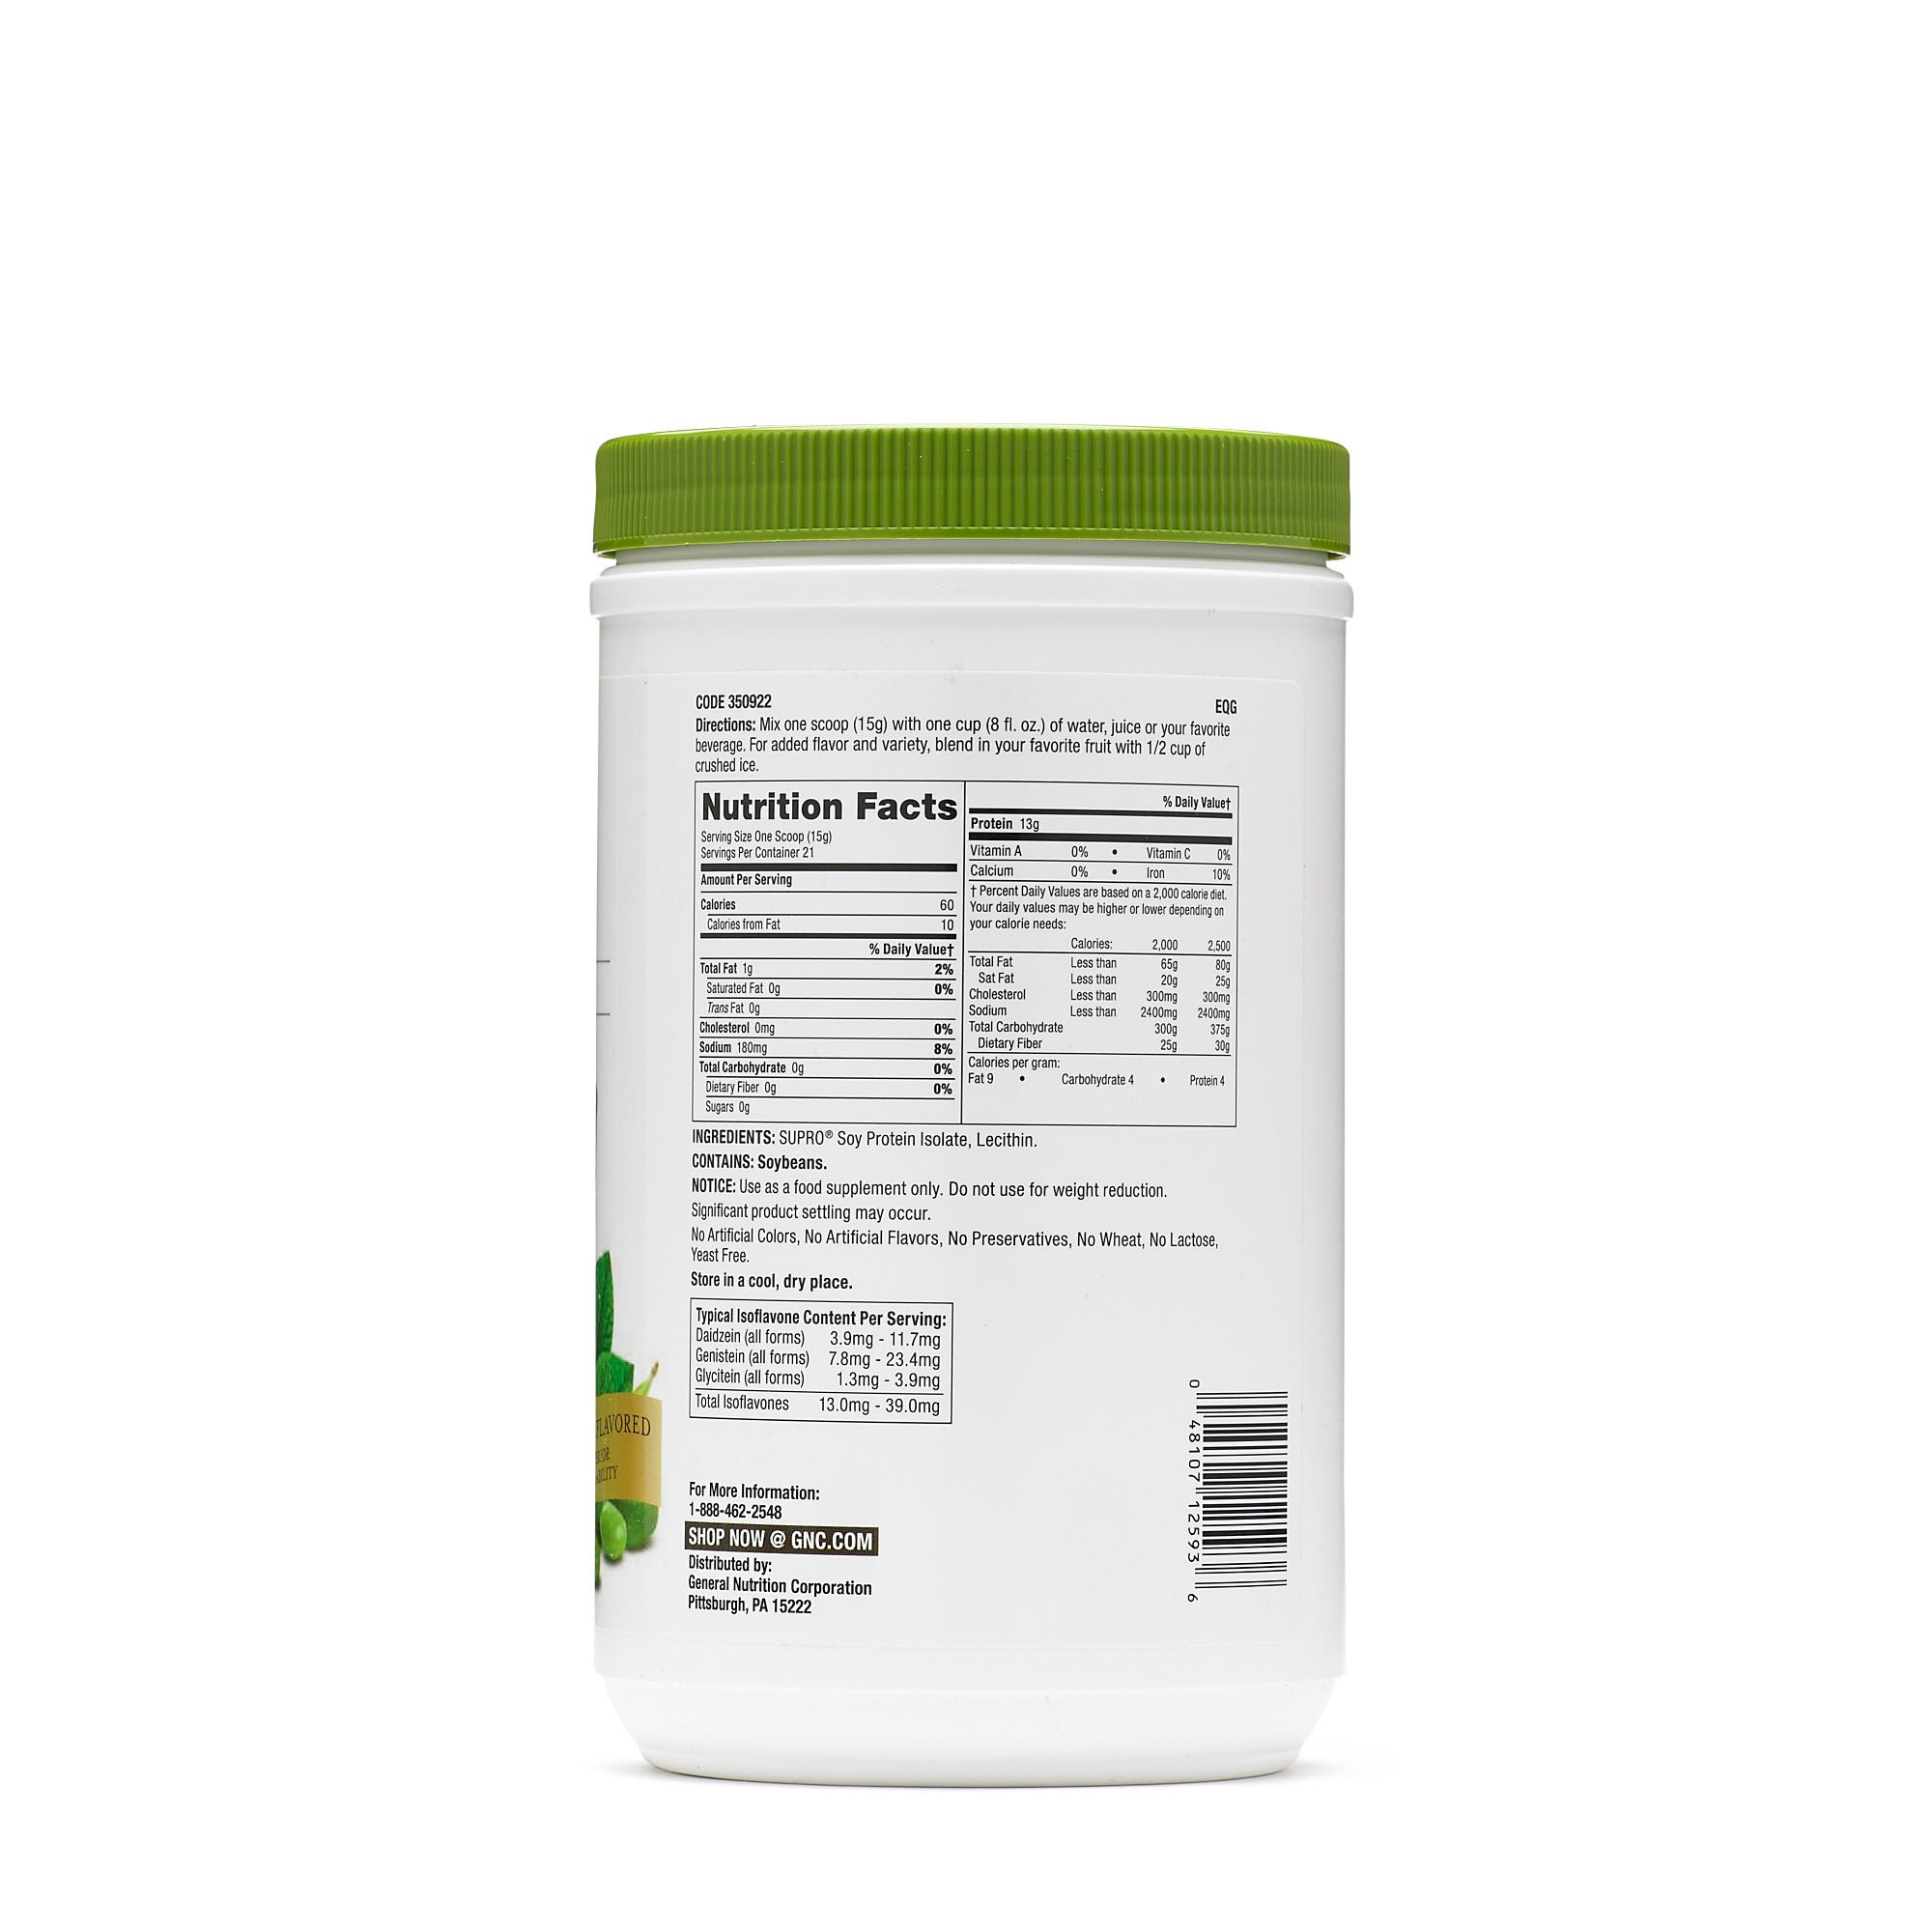 GNC SuperFoods Soy Protein, Unflavored, 21 Servings by GNC (Image #2)